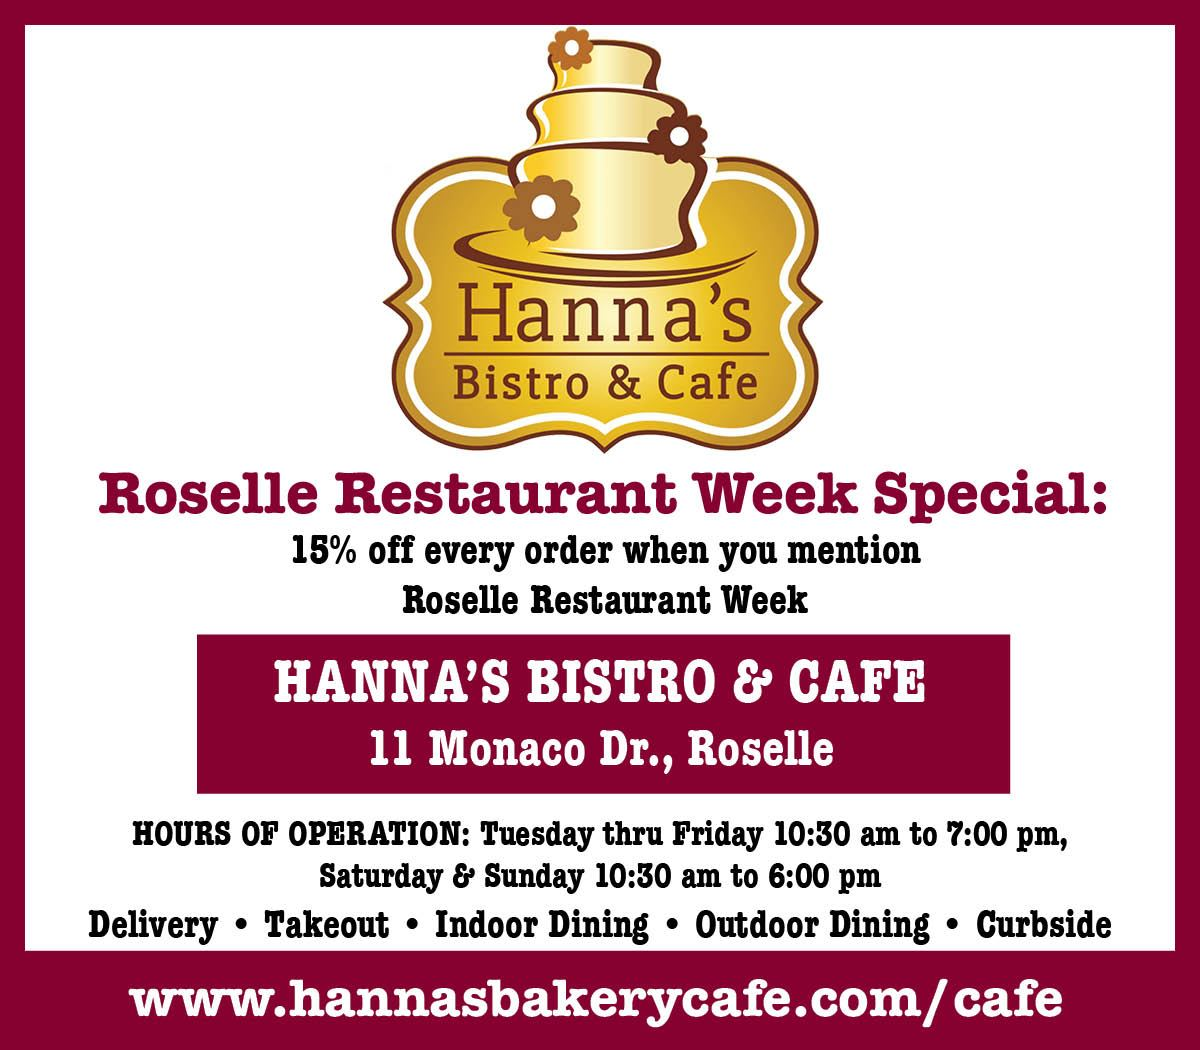 Hannah's Bistro Opens in new window